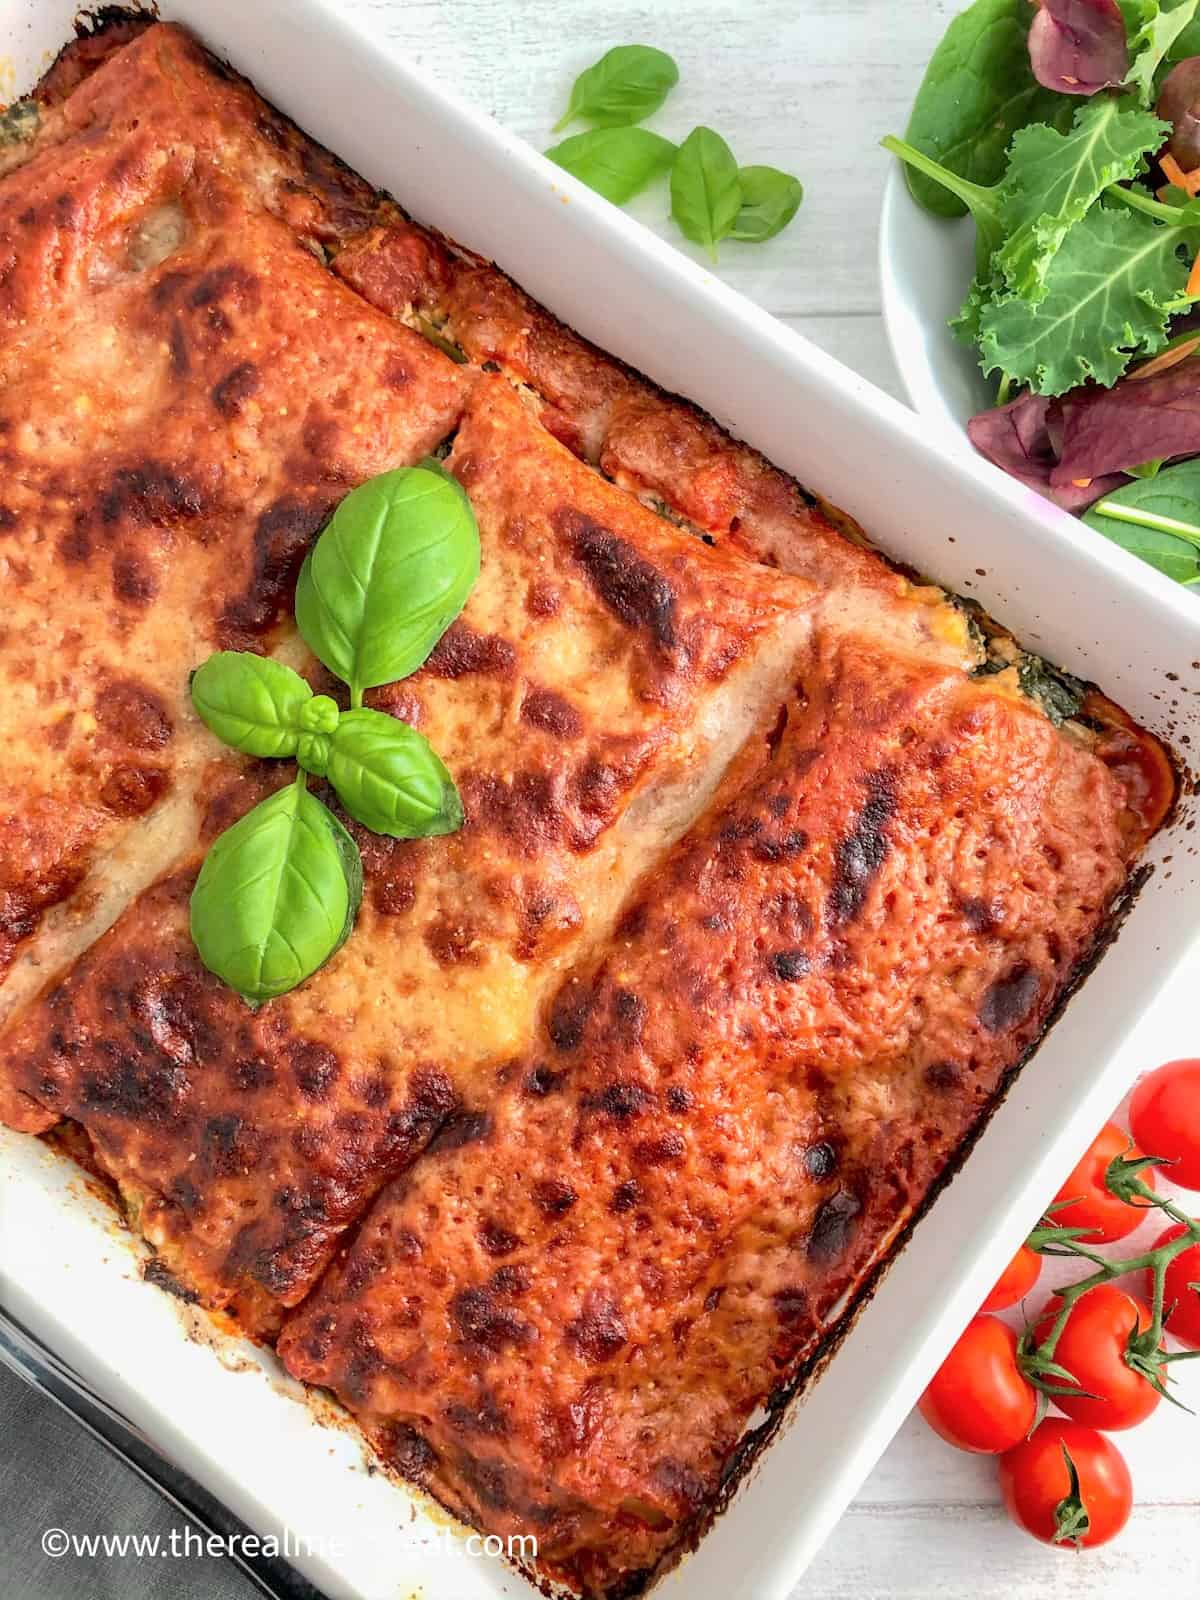 Spinach and Ricotta Lasagne baked in dish with cherry tomatoes and side salad